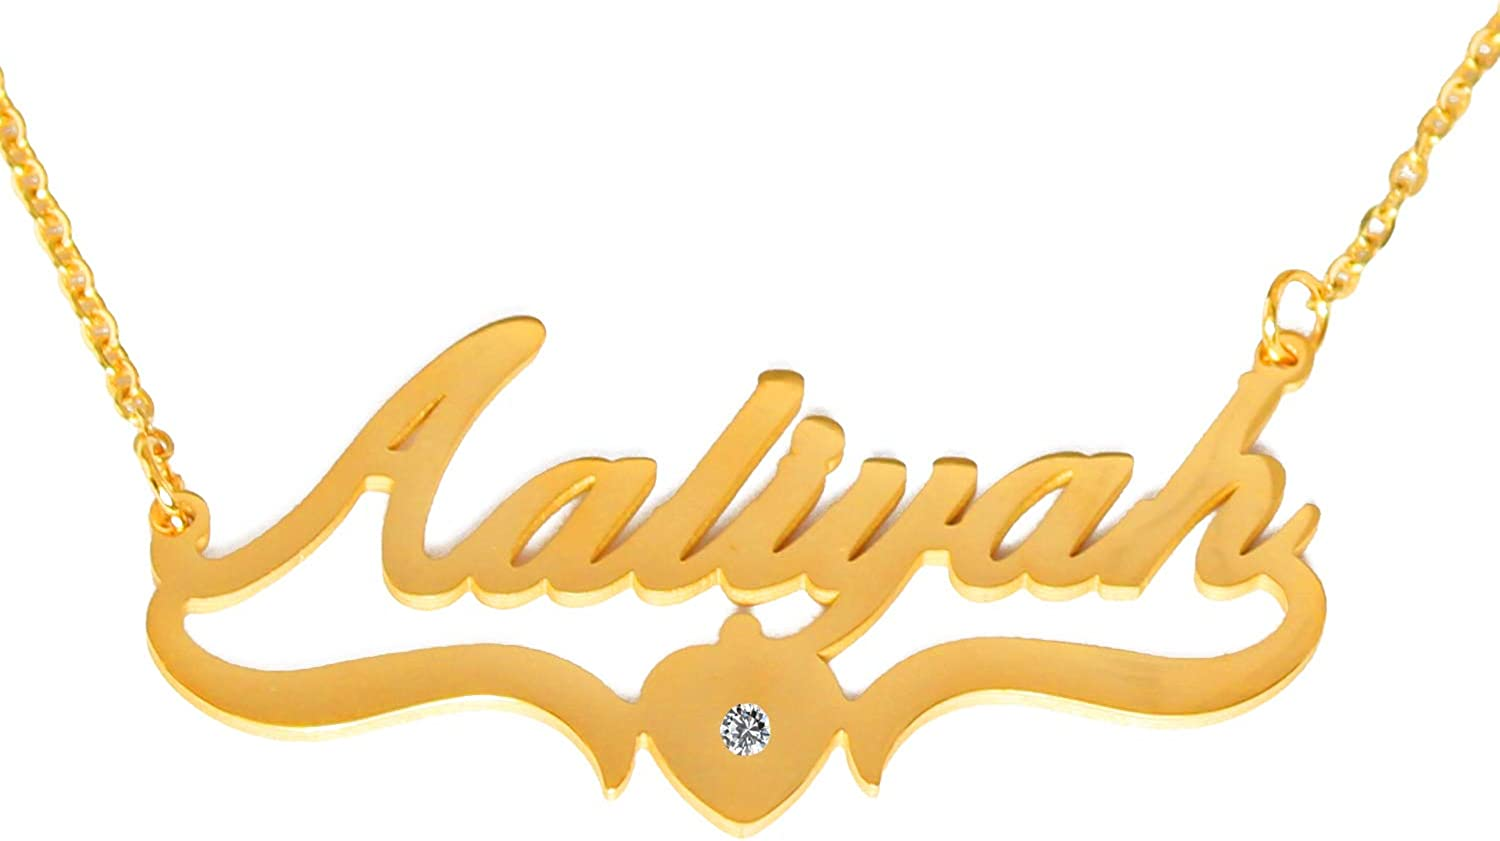 AALIYAH - Personalized Custom Name Necklace -18ct Gold Plated - Heart Shaped